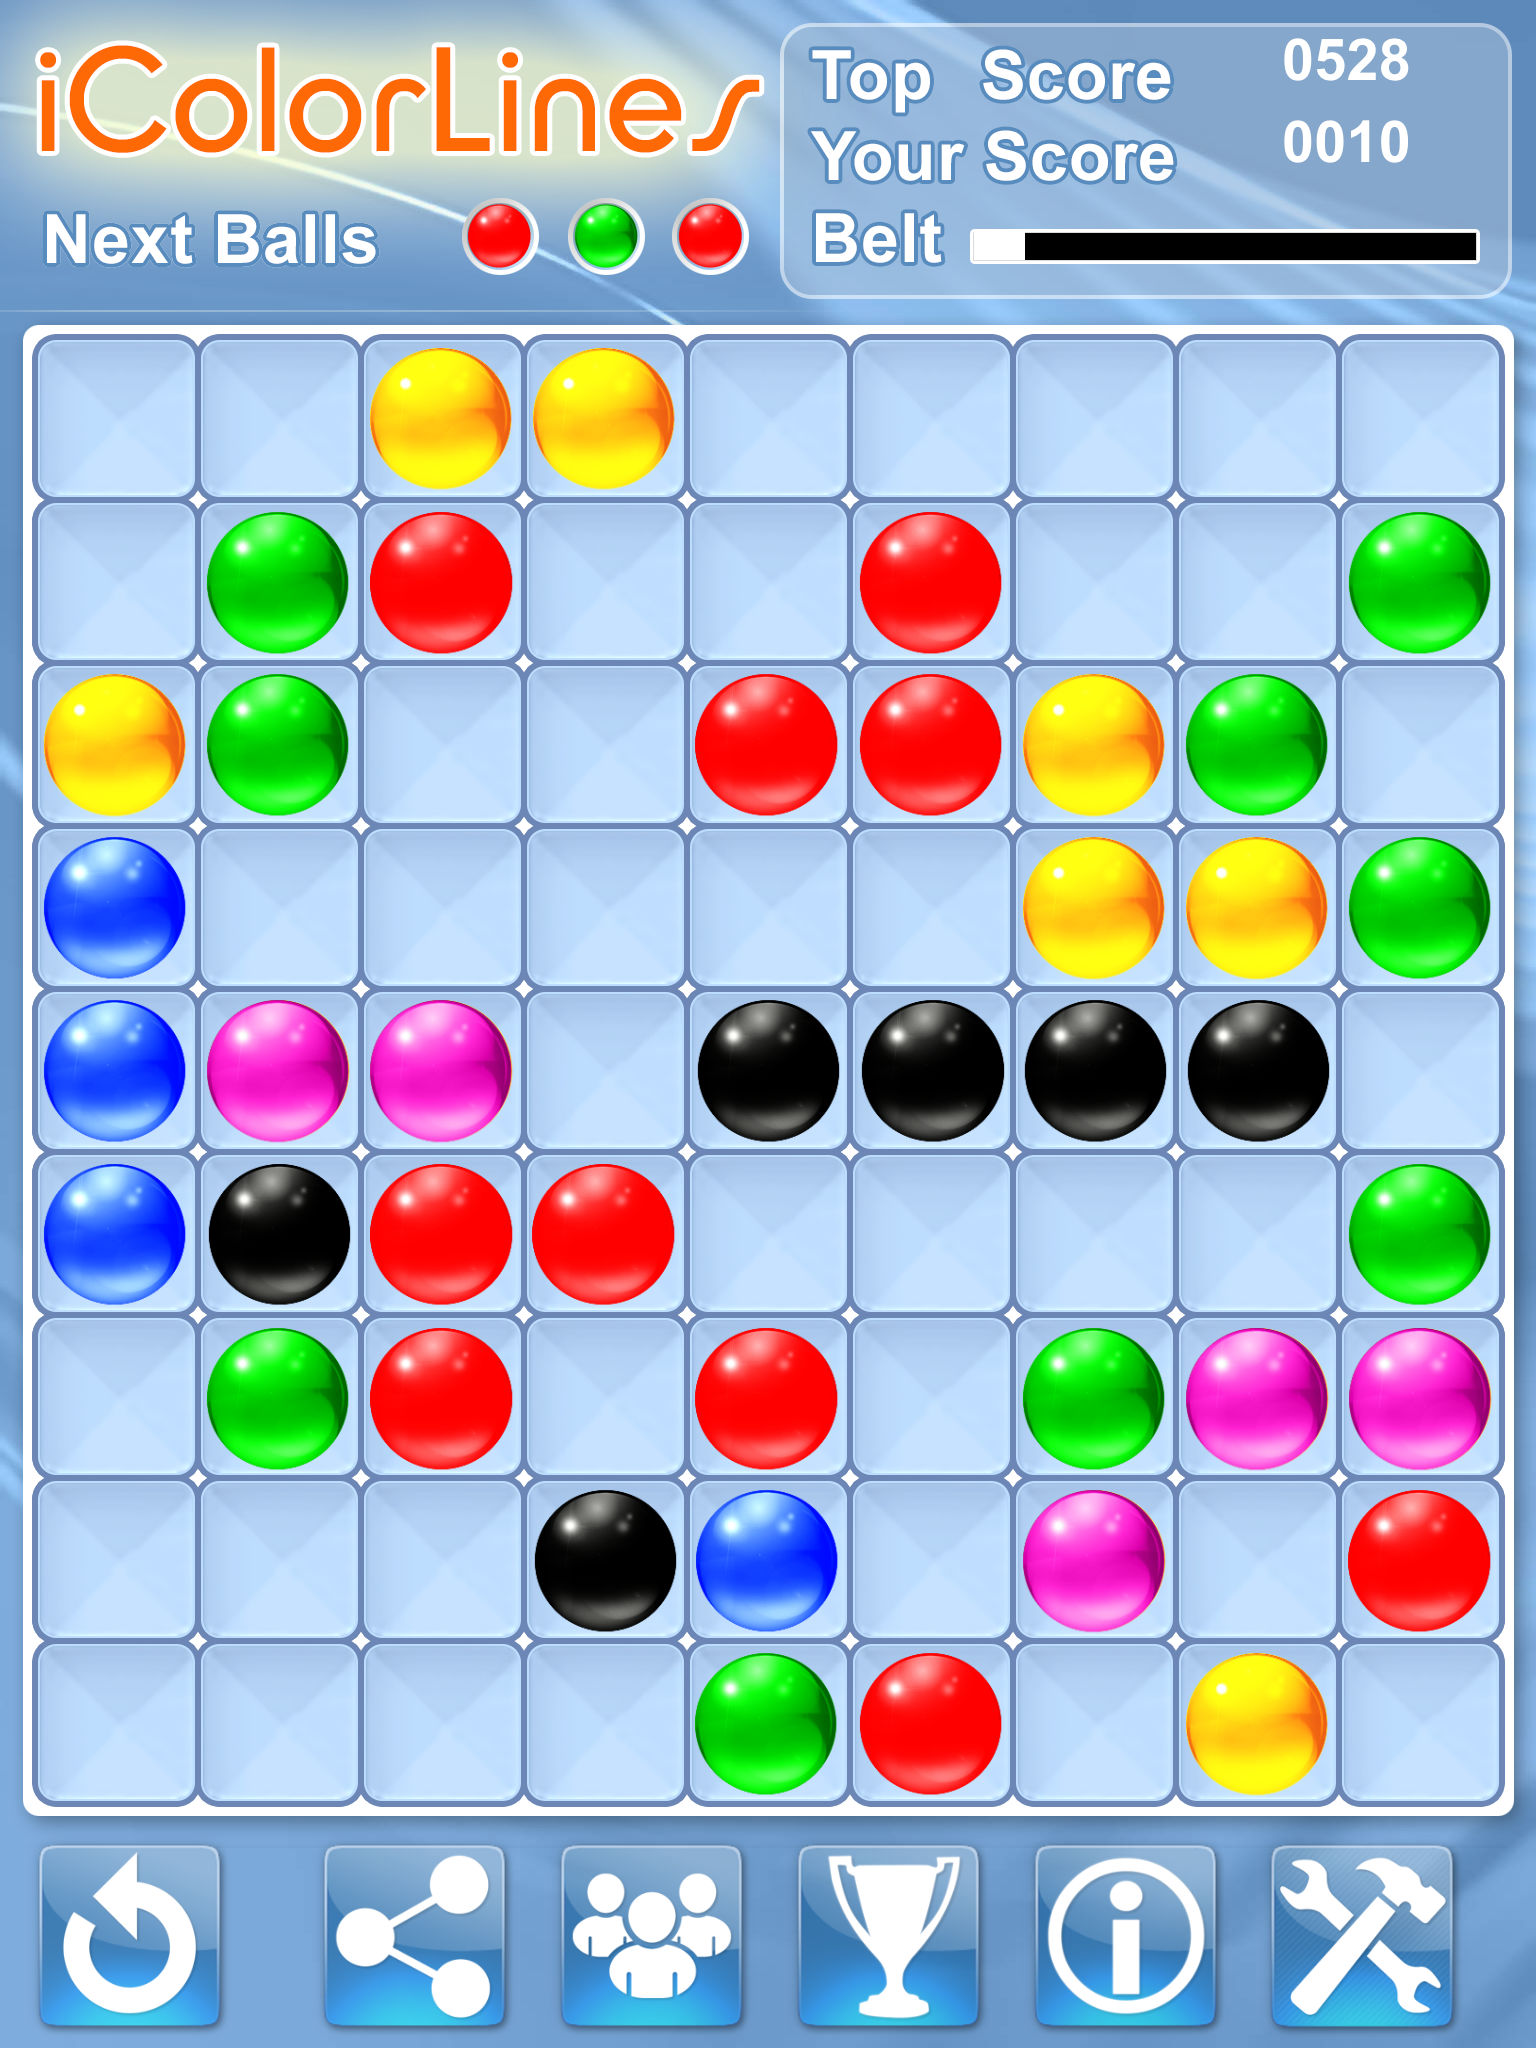 i Color Lines Puzzle Game available on the App Store